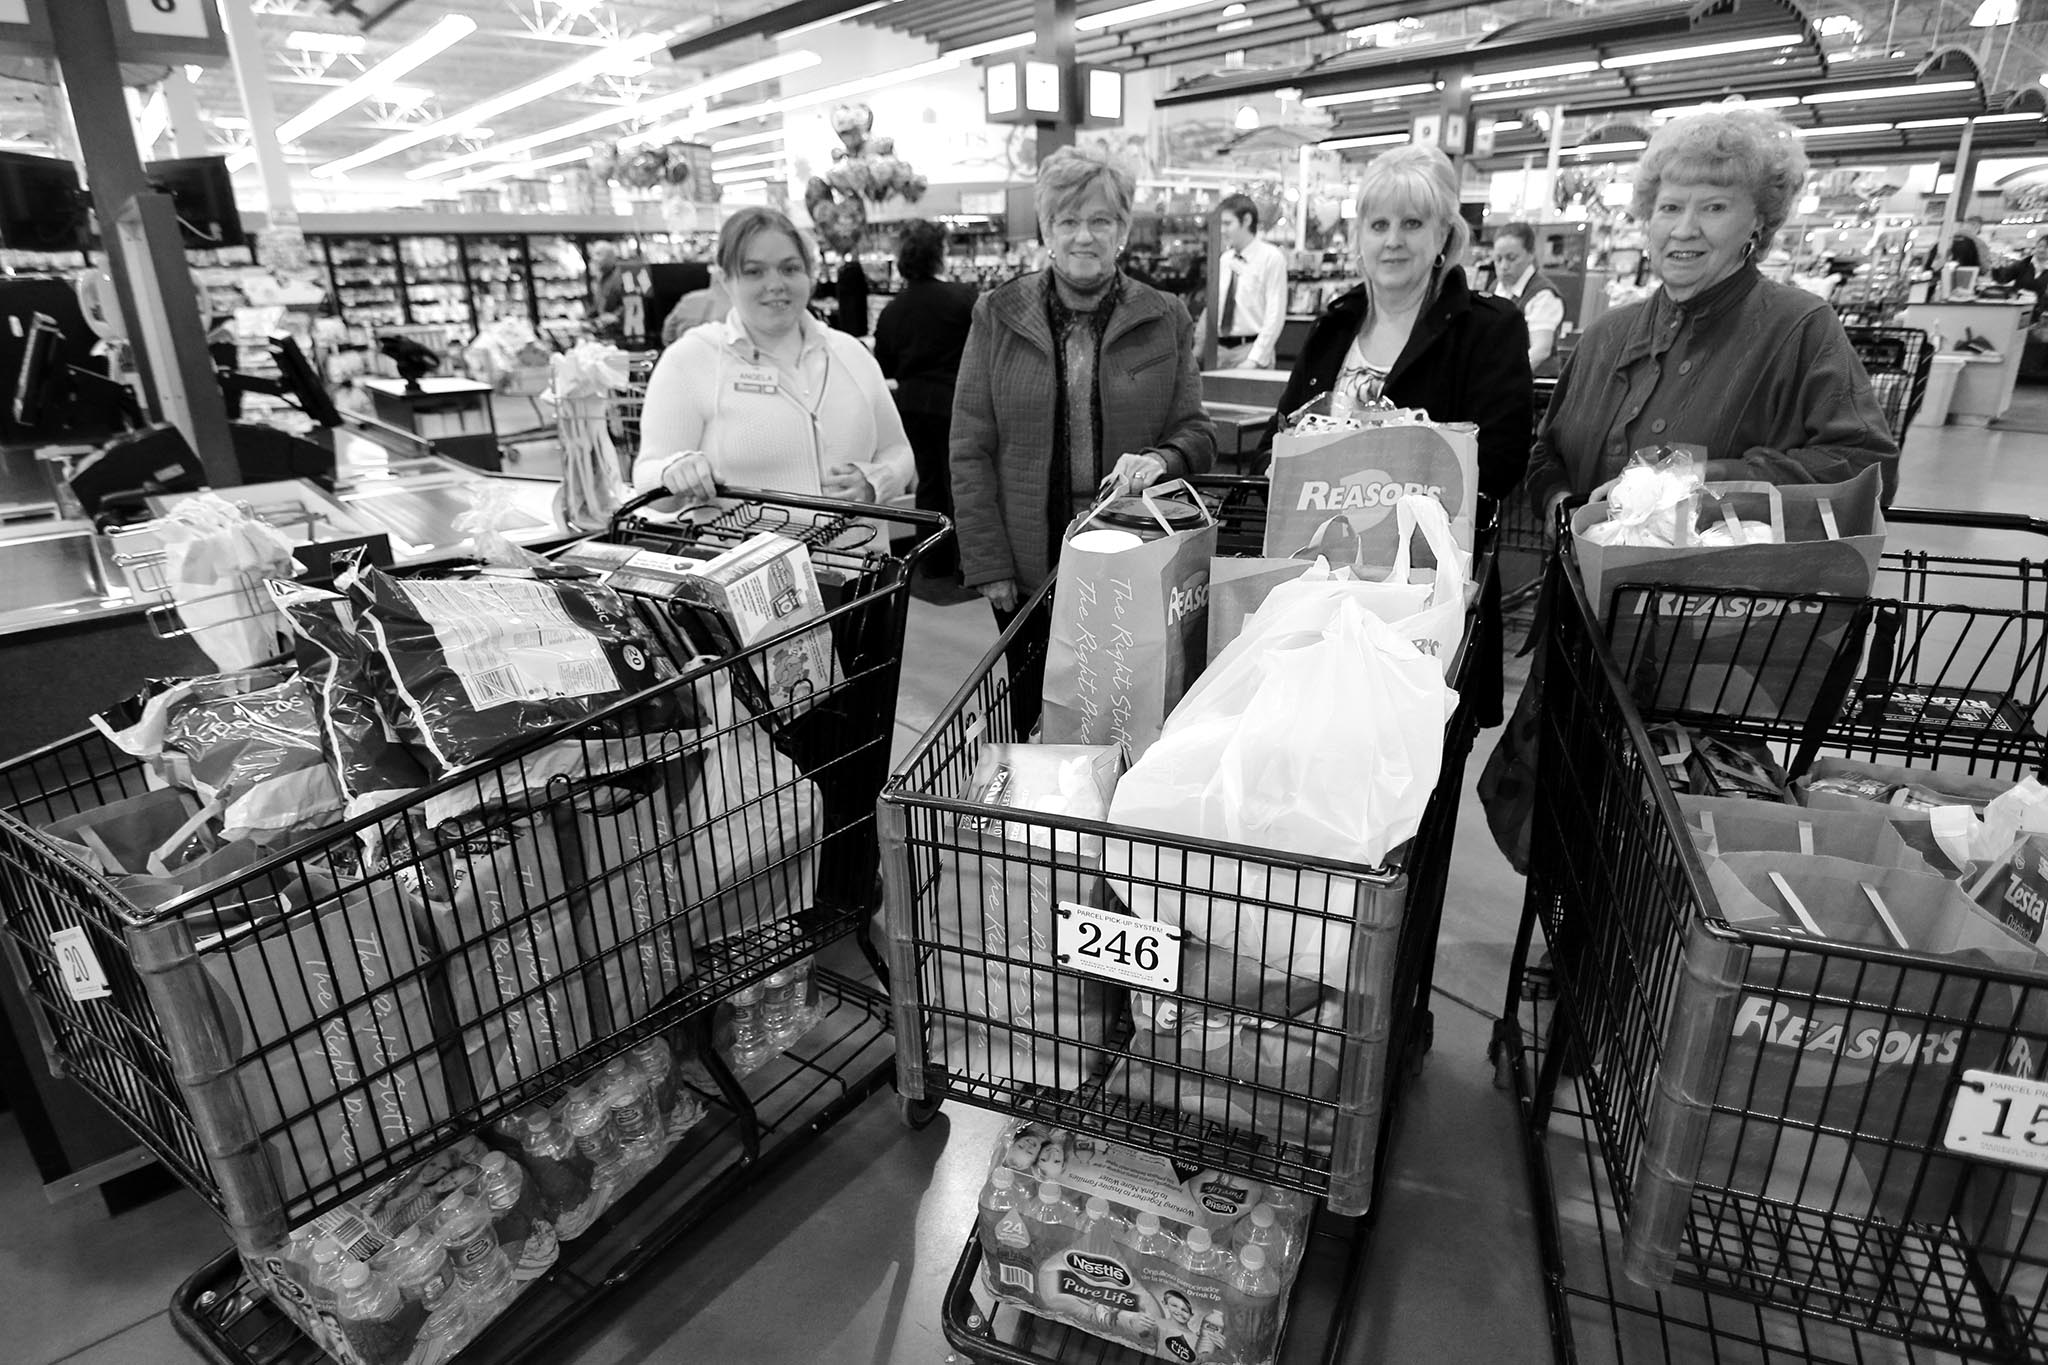 Connecting consumers with food and agriculture information is the goal of the long-running food donation efforts the Oklahoma Farm Bureau Women's Leadership Committee has undertaken through Food Check-Out Day, and later, Our Food Link activities. As part of the program, OKFB WLC members purchase food and gift certificates to donate to the Ronald McDonald House Charities in Oklahoma City and Tulsa, providing families who have a child receiving treatment at nearby hospitals with a myriad of food choices during their stay. In this 2014 Our Food Link photo, OKFB WLC members Beverly Delmedico (right) and Lena Henson (second from left) shop for food to donate at a Tulsa-area Reasor's store with OKFB WLC Coordinator Marcia Irvin (second from right). Also pictured is a member of the Reasor's staff who helped the WLC members.